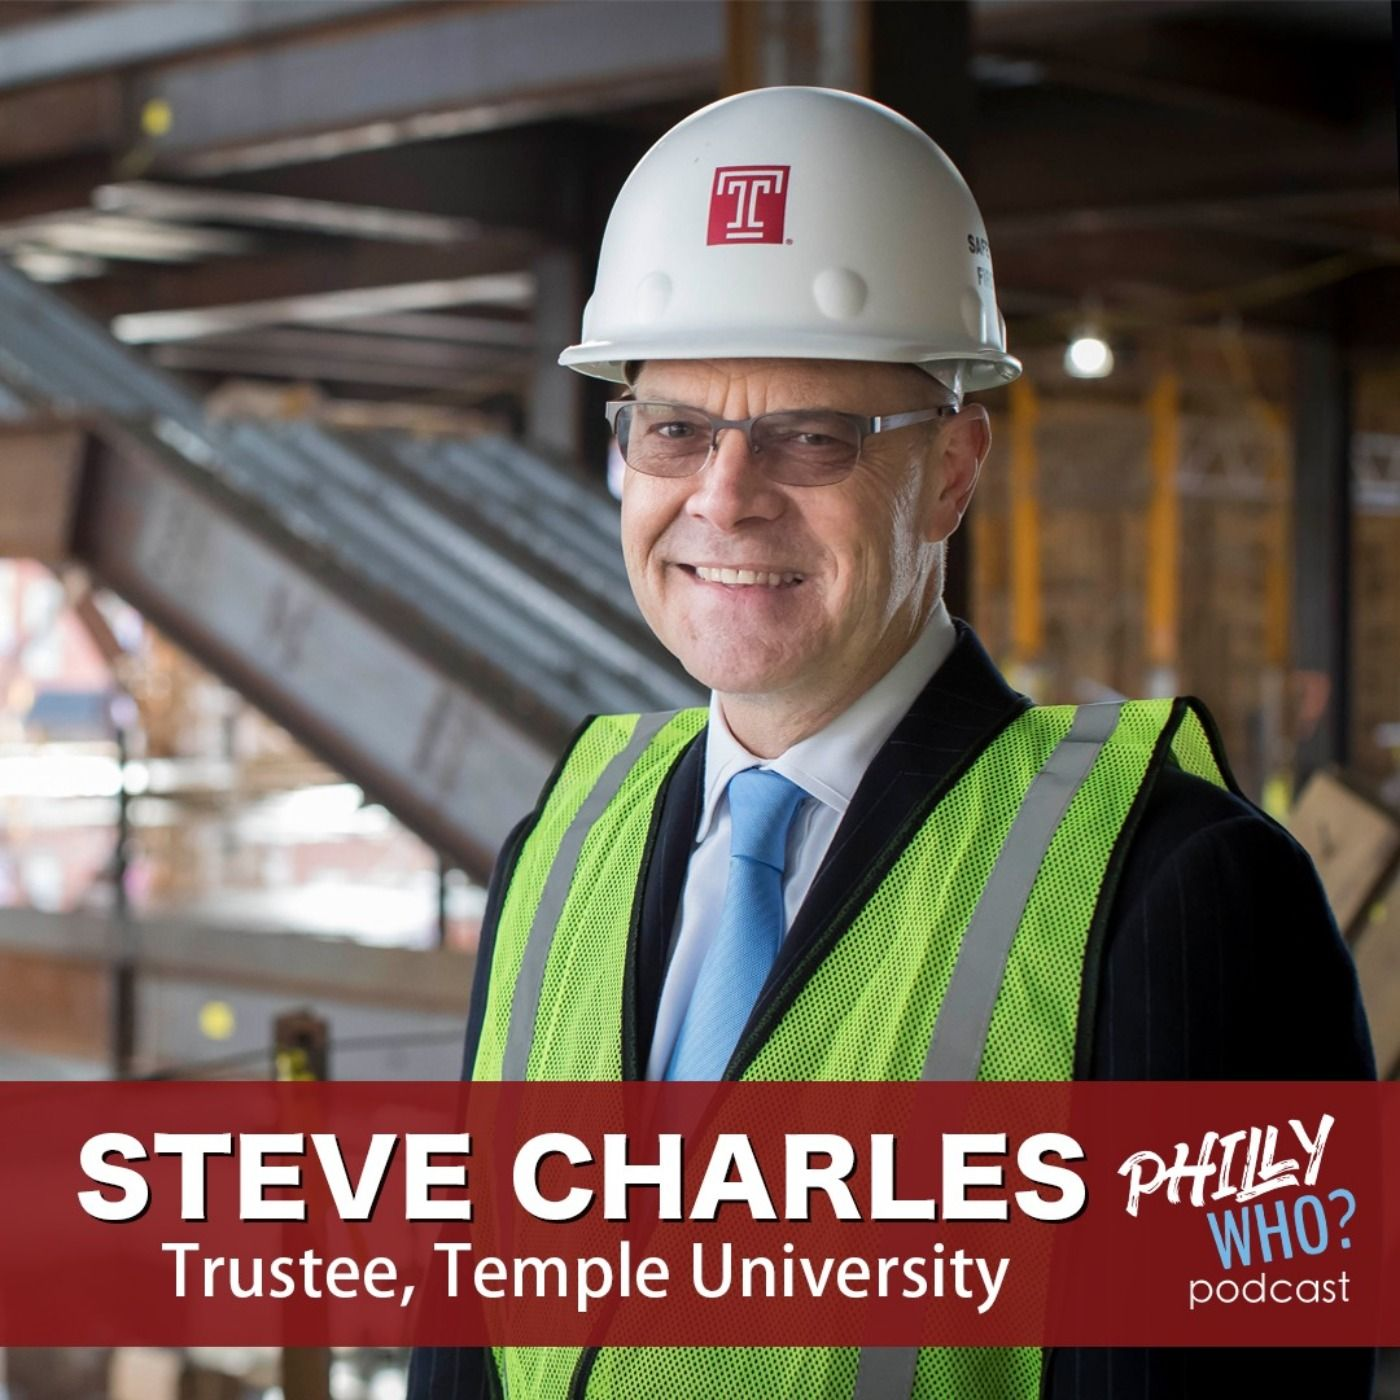 Steve Charles: From the Farms of Lancaster to the Library of the Future